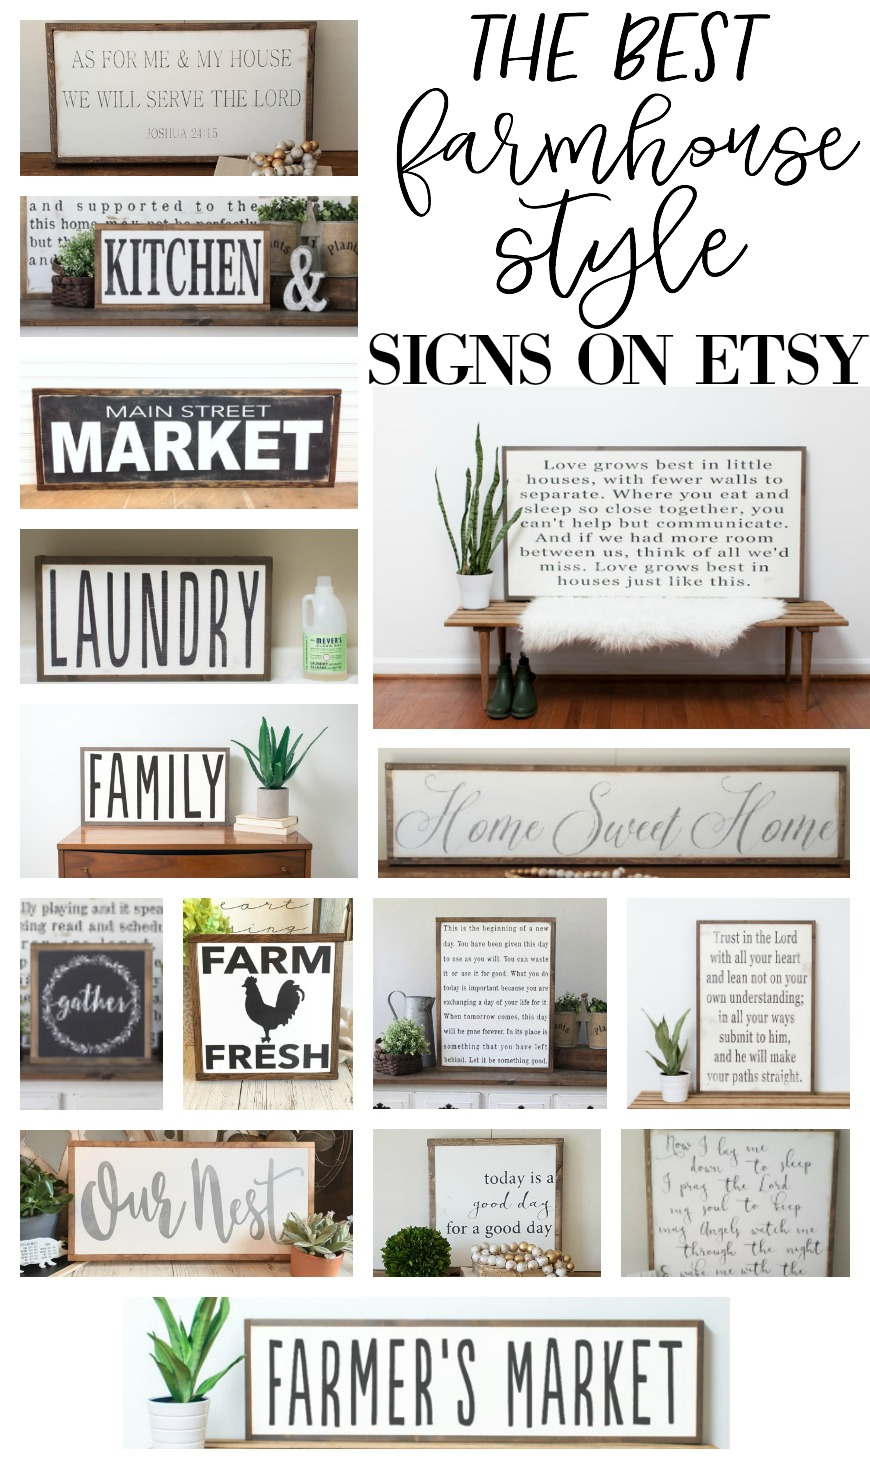 The best farmhouse style signs on etsy - Inspired diy ideas small kitchen ...